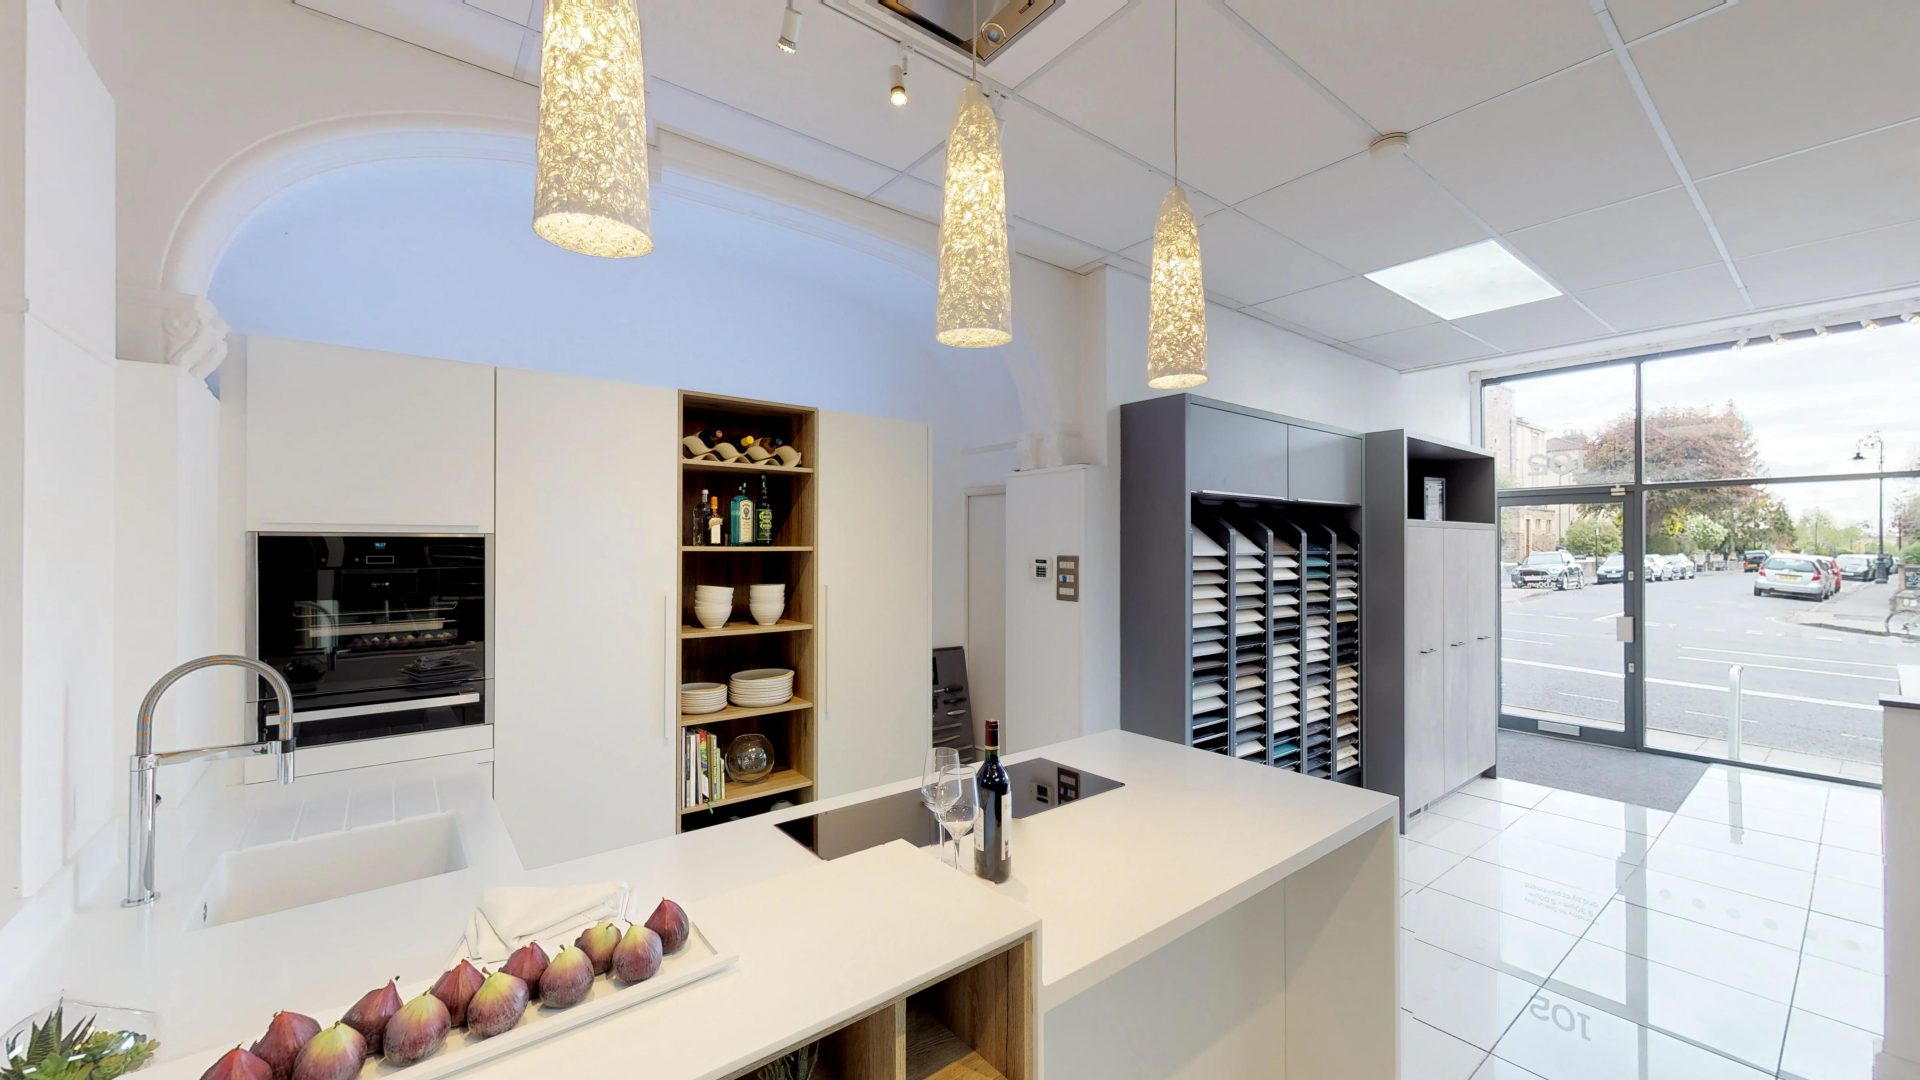 The-Kitchen-Partners-04292019_150448